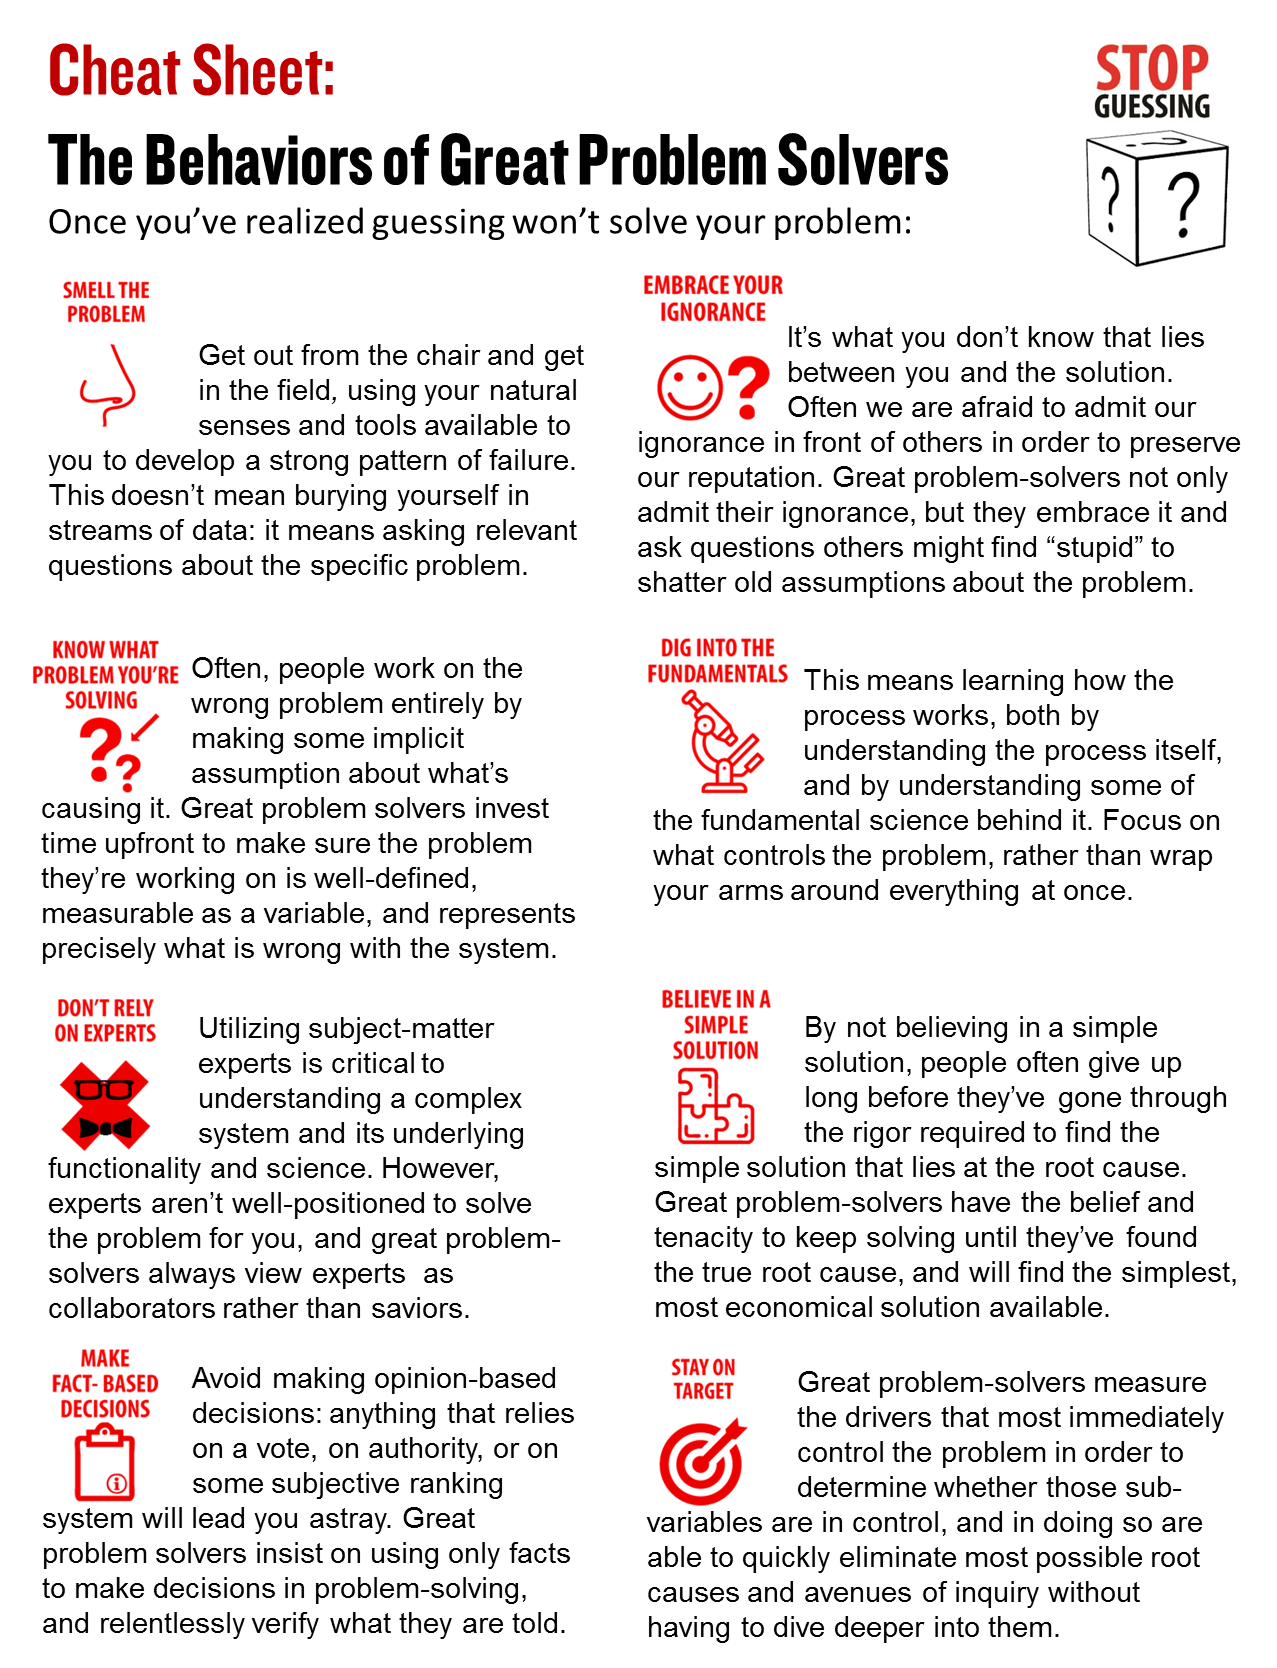 Stop Guessing Cheat Sheet